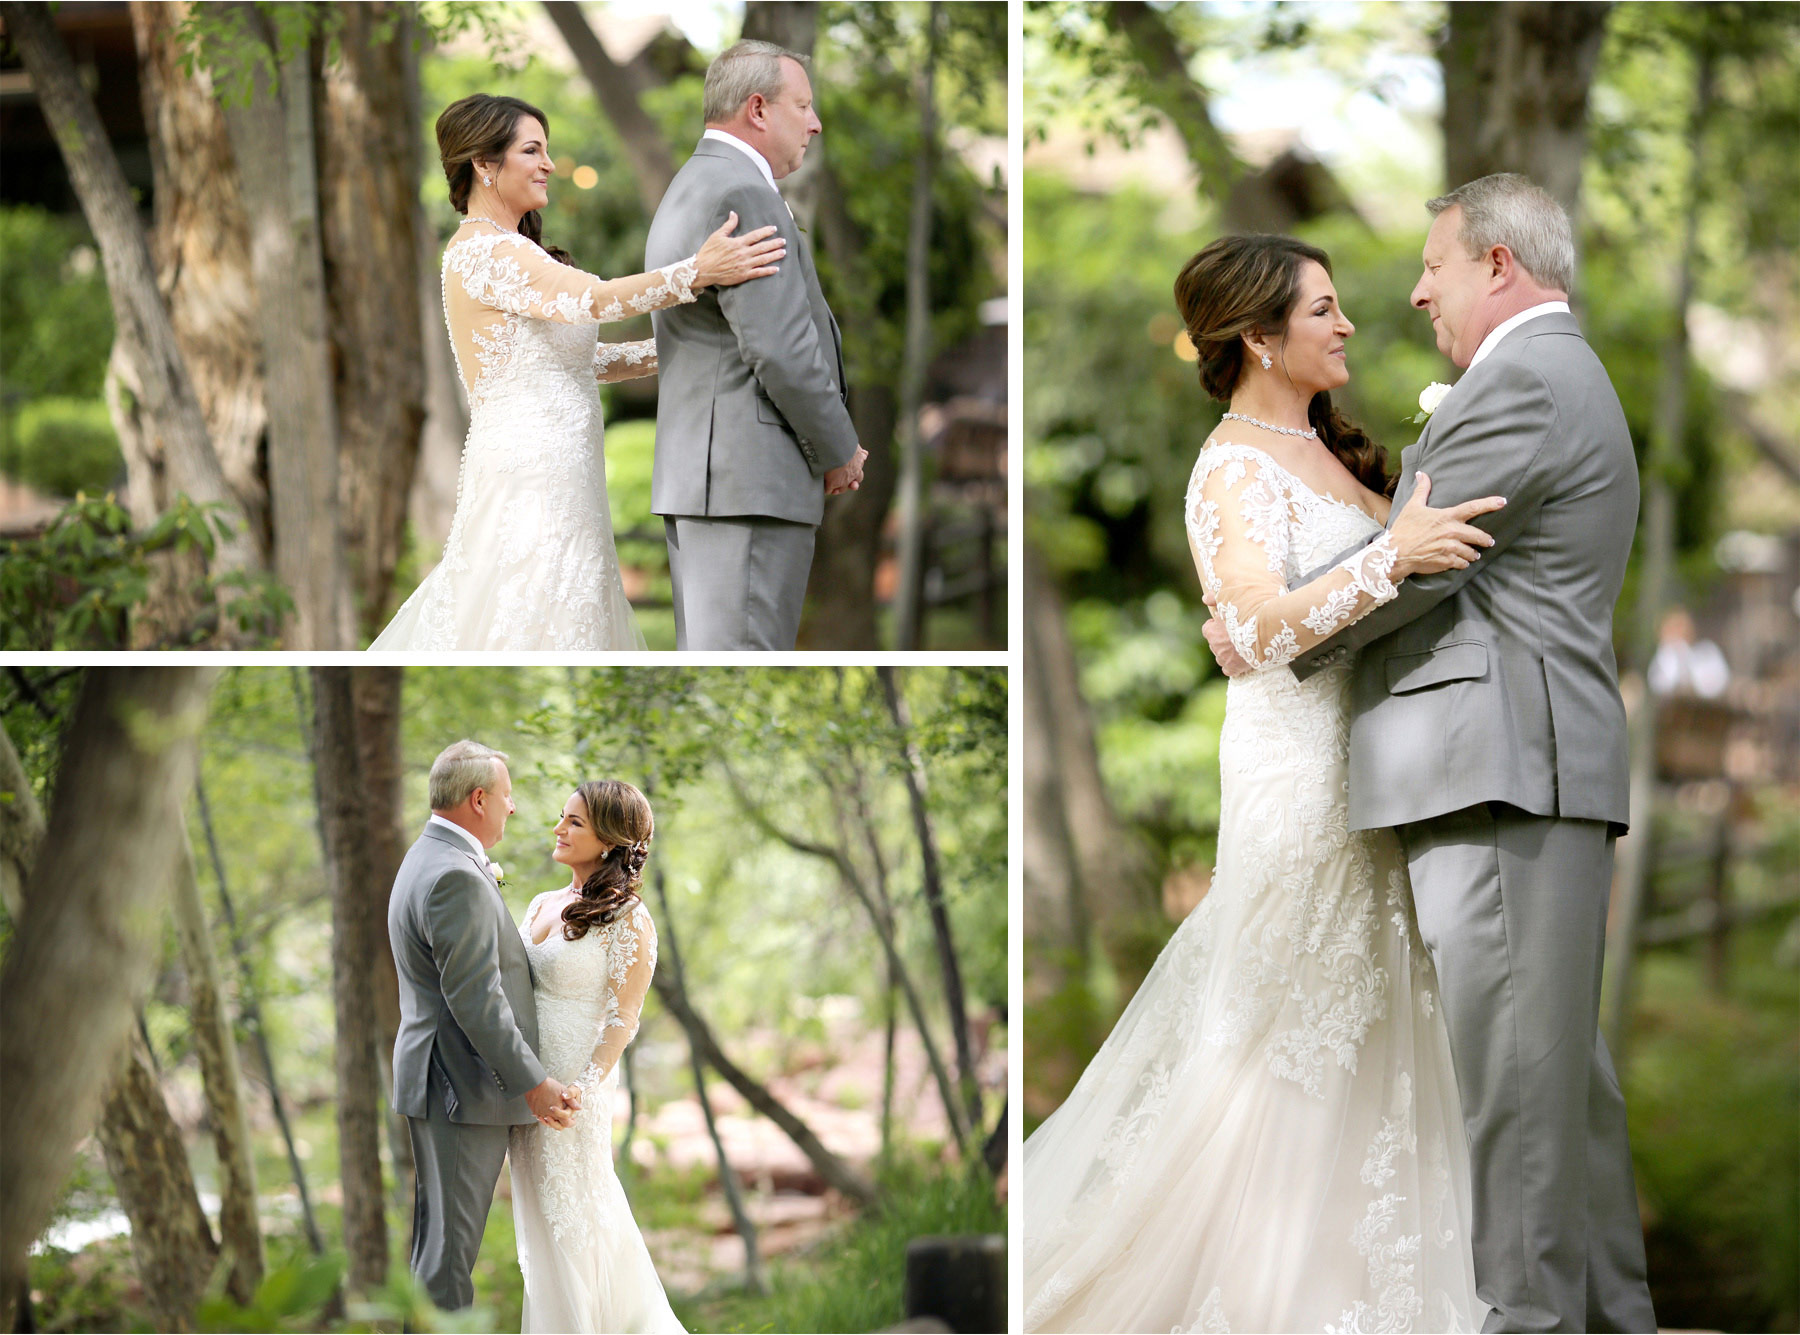 09-Sedona-Arizona-Wedding-Photographer-by-Andrew-Vick-Photography-Spring--LAuberge-de-Sedona-Resort-First-Meeting-Look-Bride-Groom-Embrace-Barbara-and-Mike.jpg